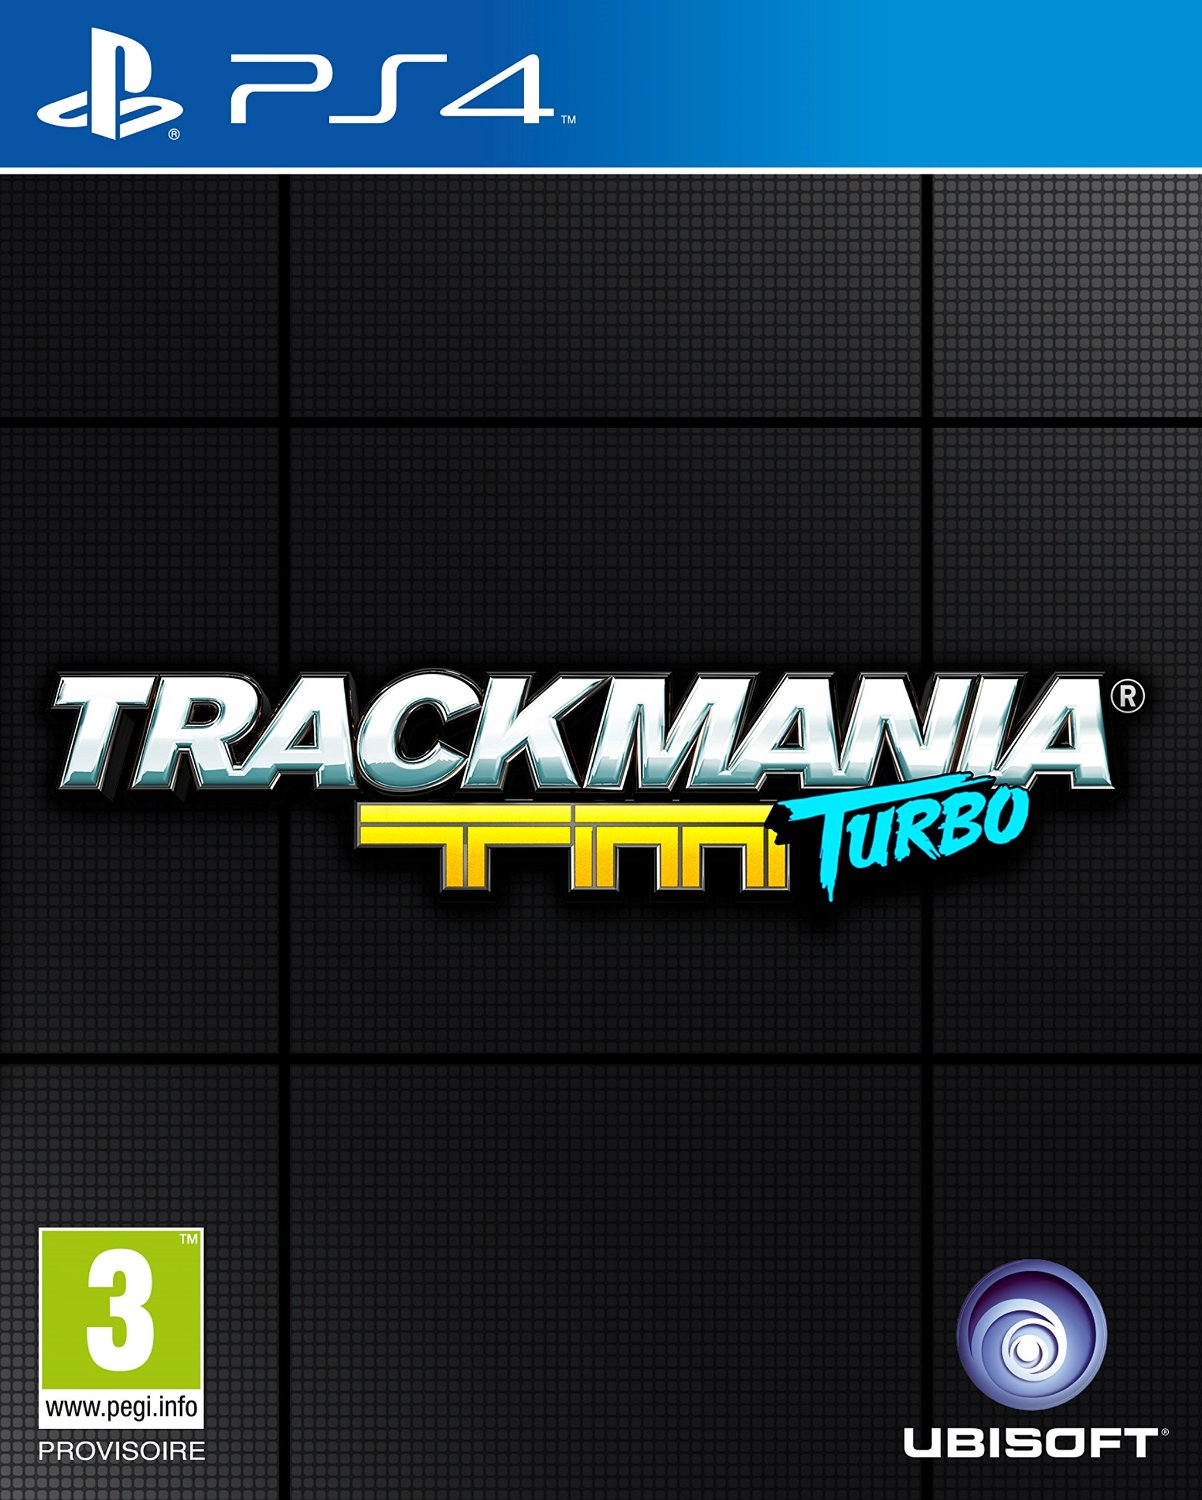 acheter trackmania turbo ps4 course. Black Bedroom Furniture Sets. Home Design Ideas